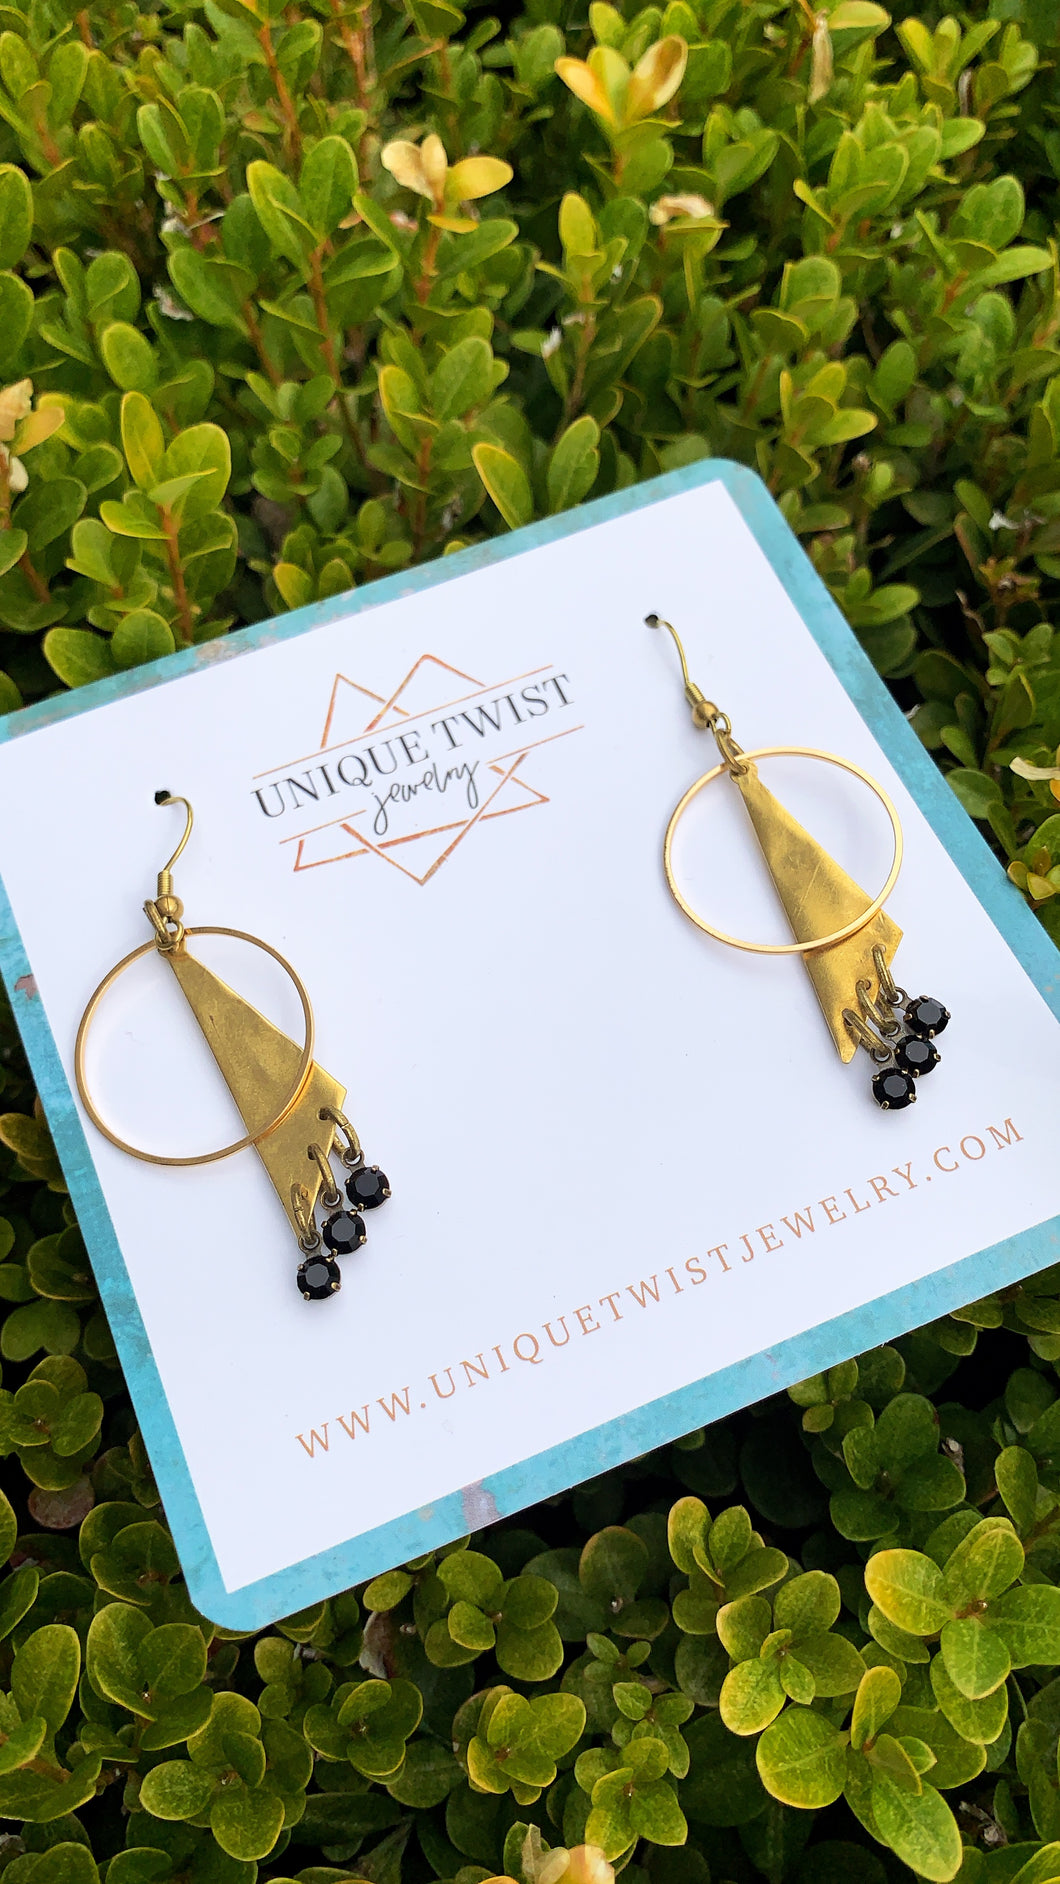 In honor of Princess Diana, Princess of Wales, the Diana Earrings. Honor notable women. Handmade jewelry by Unique Twist Jewelry.